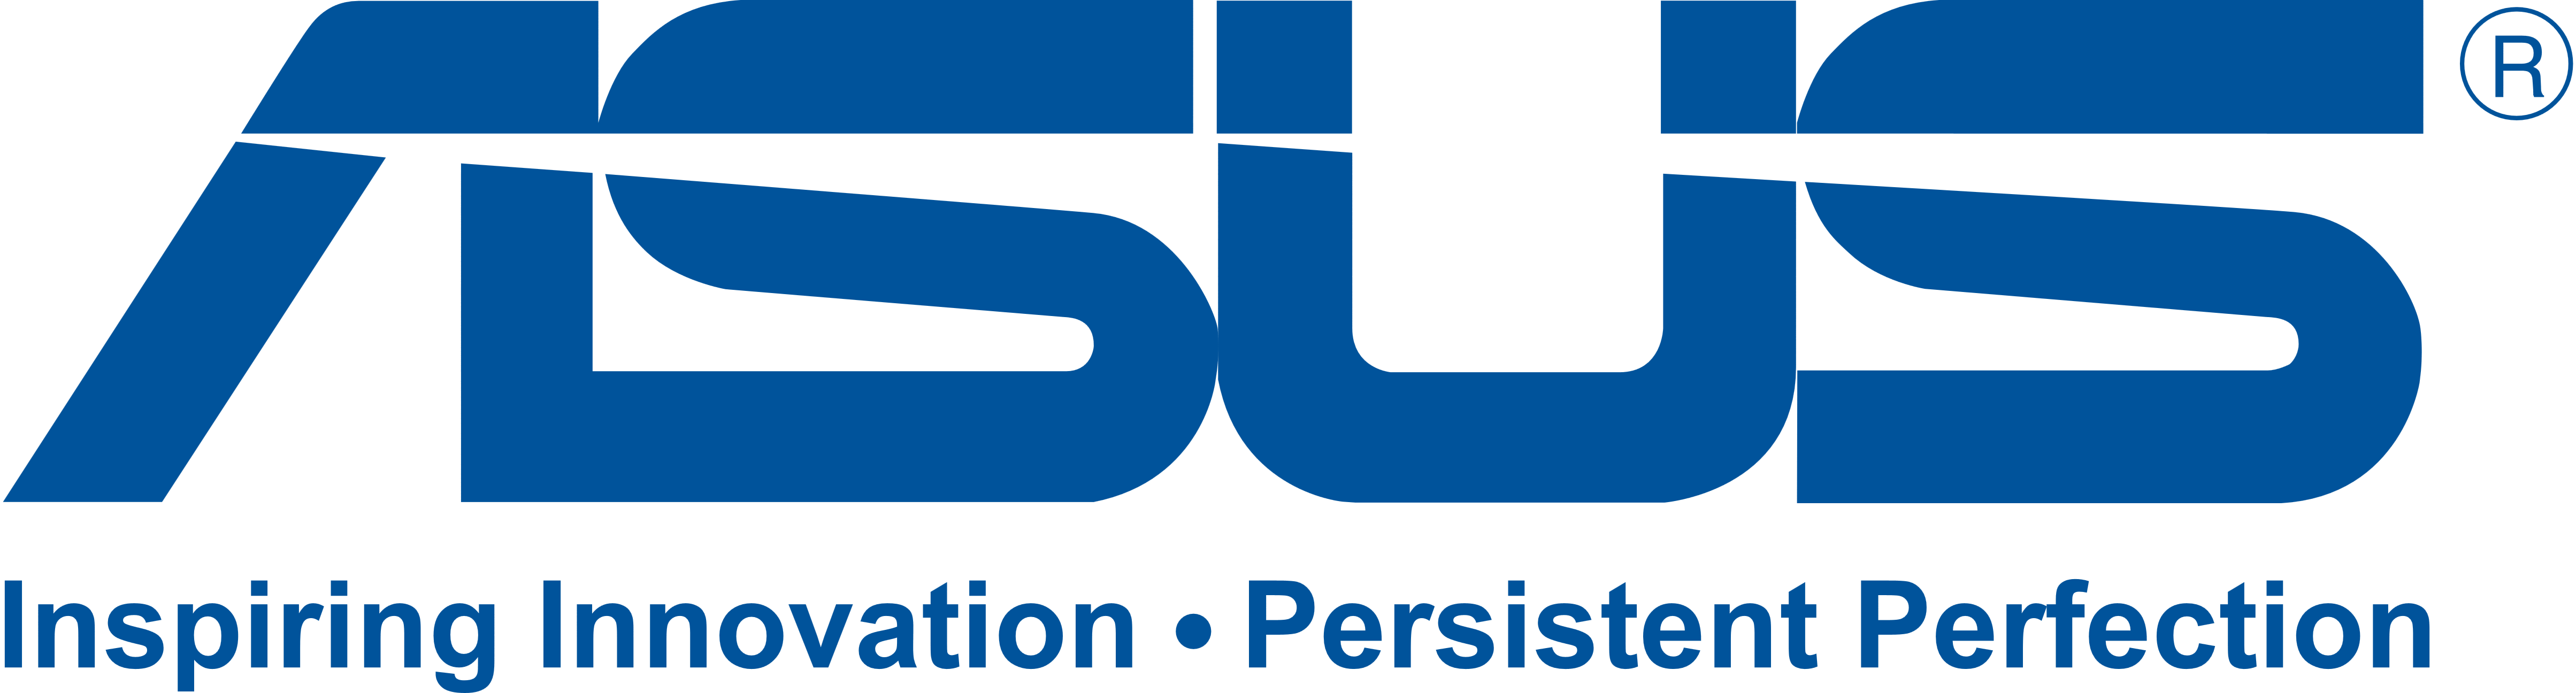 Asus logo inspiring innovation persistent perfection